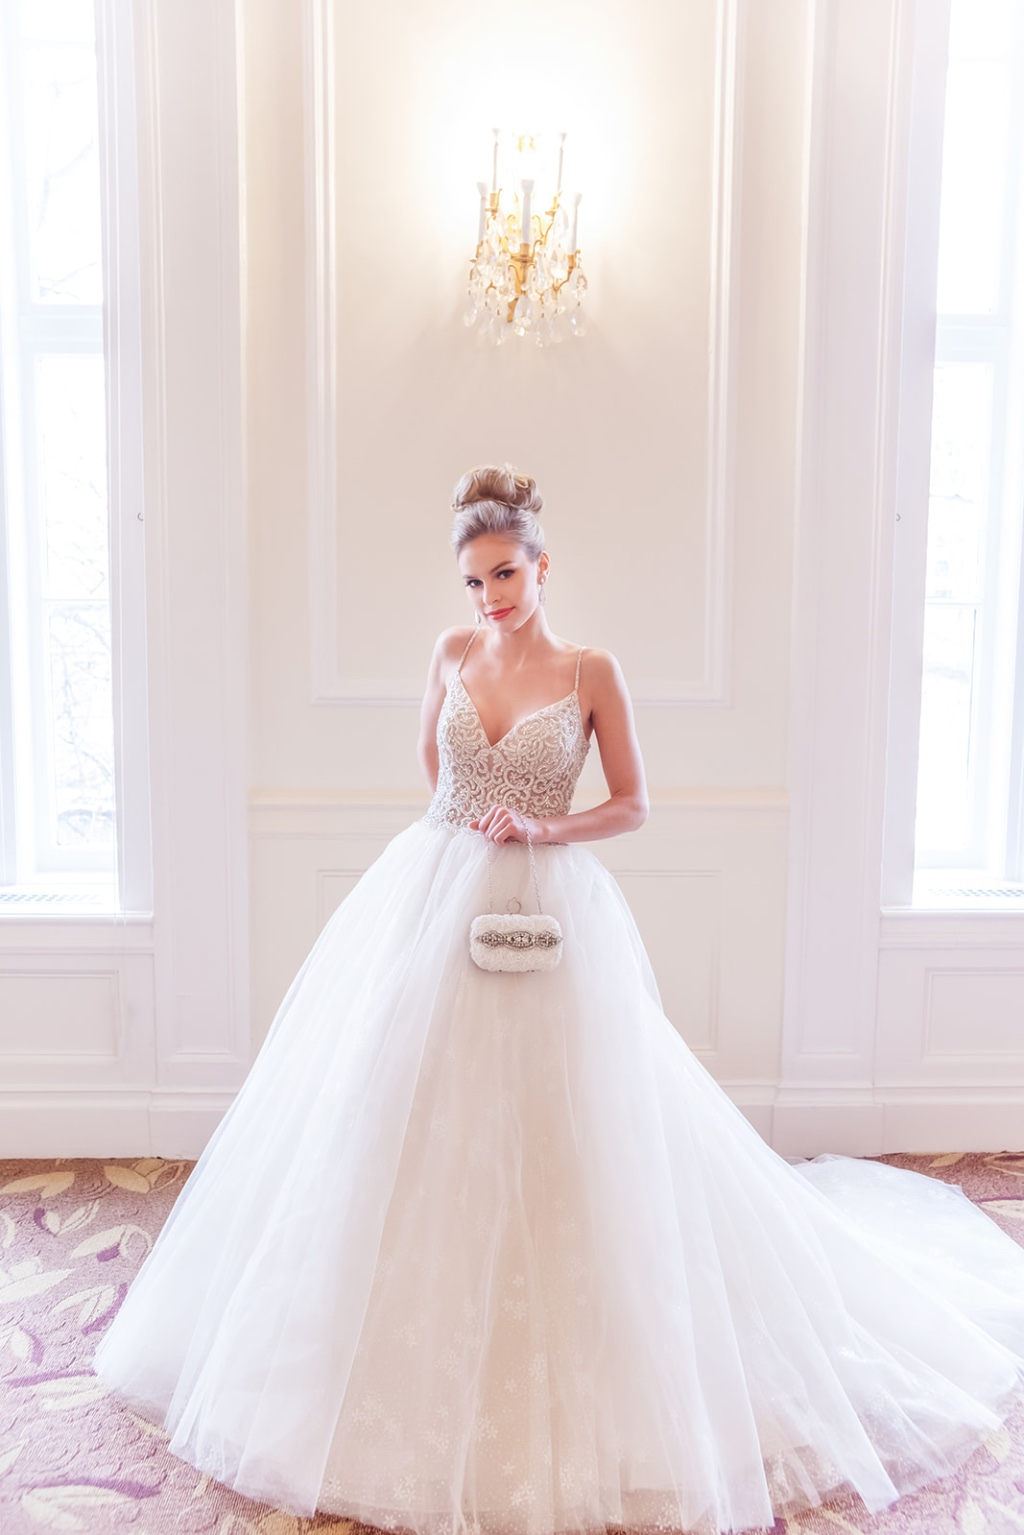 Unique bridal clutches that are one of a kind